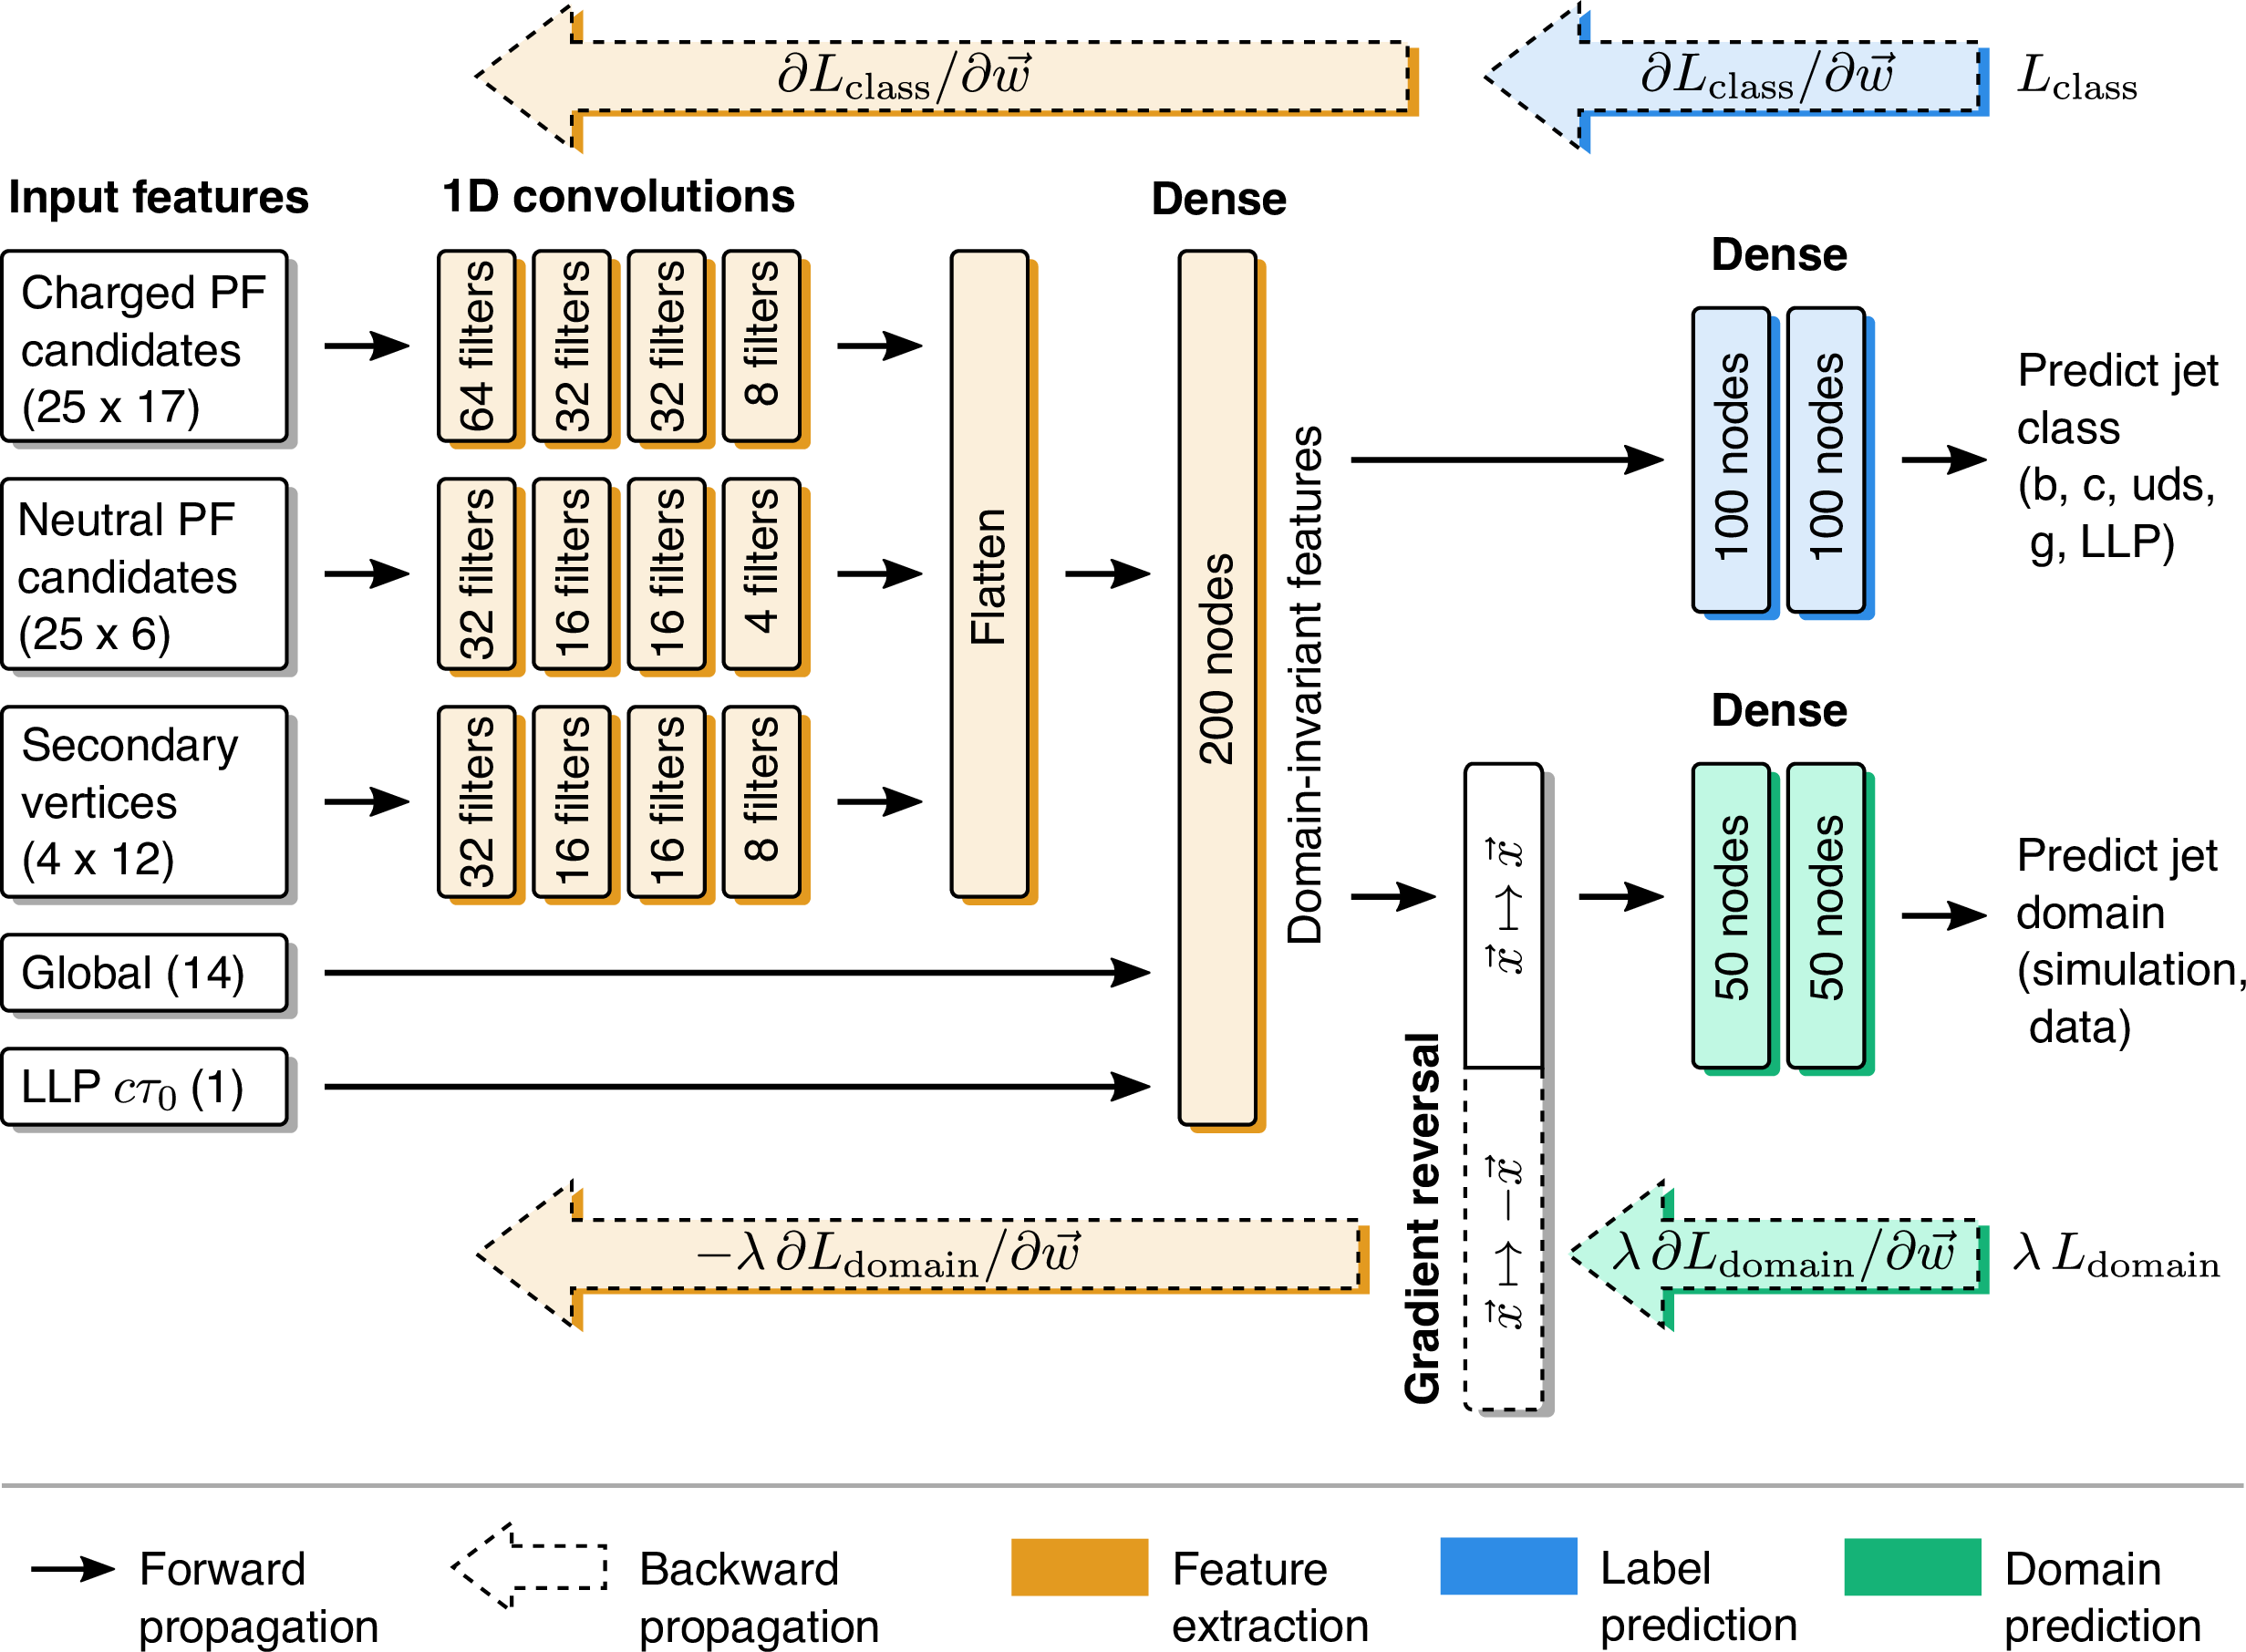 Schematic of the network architecture